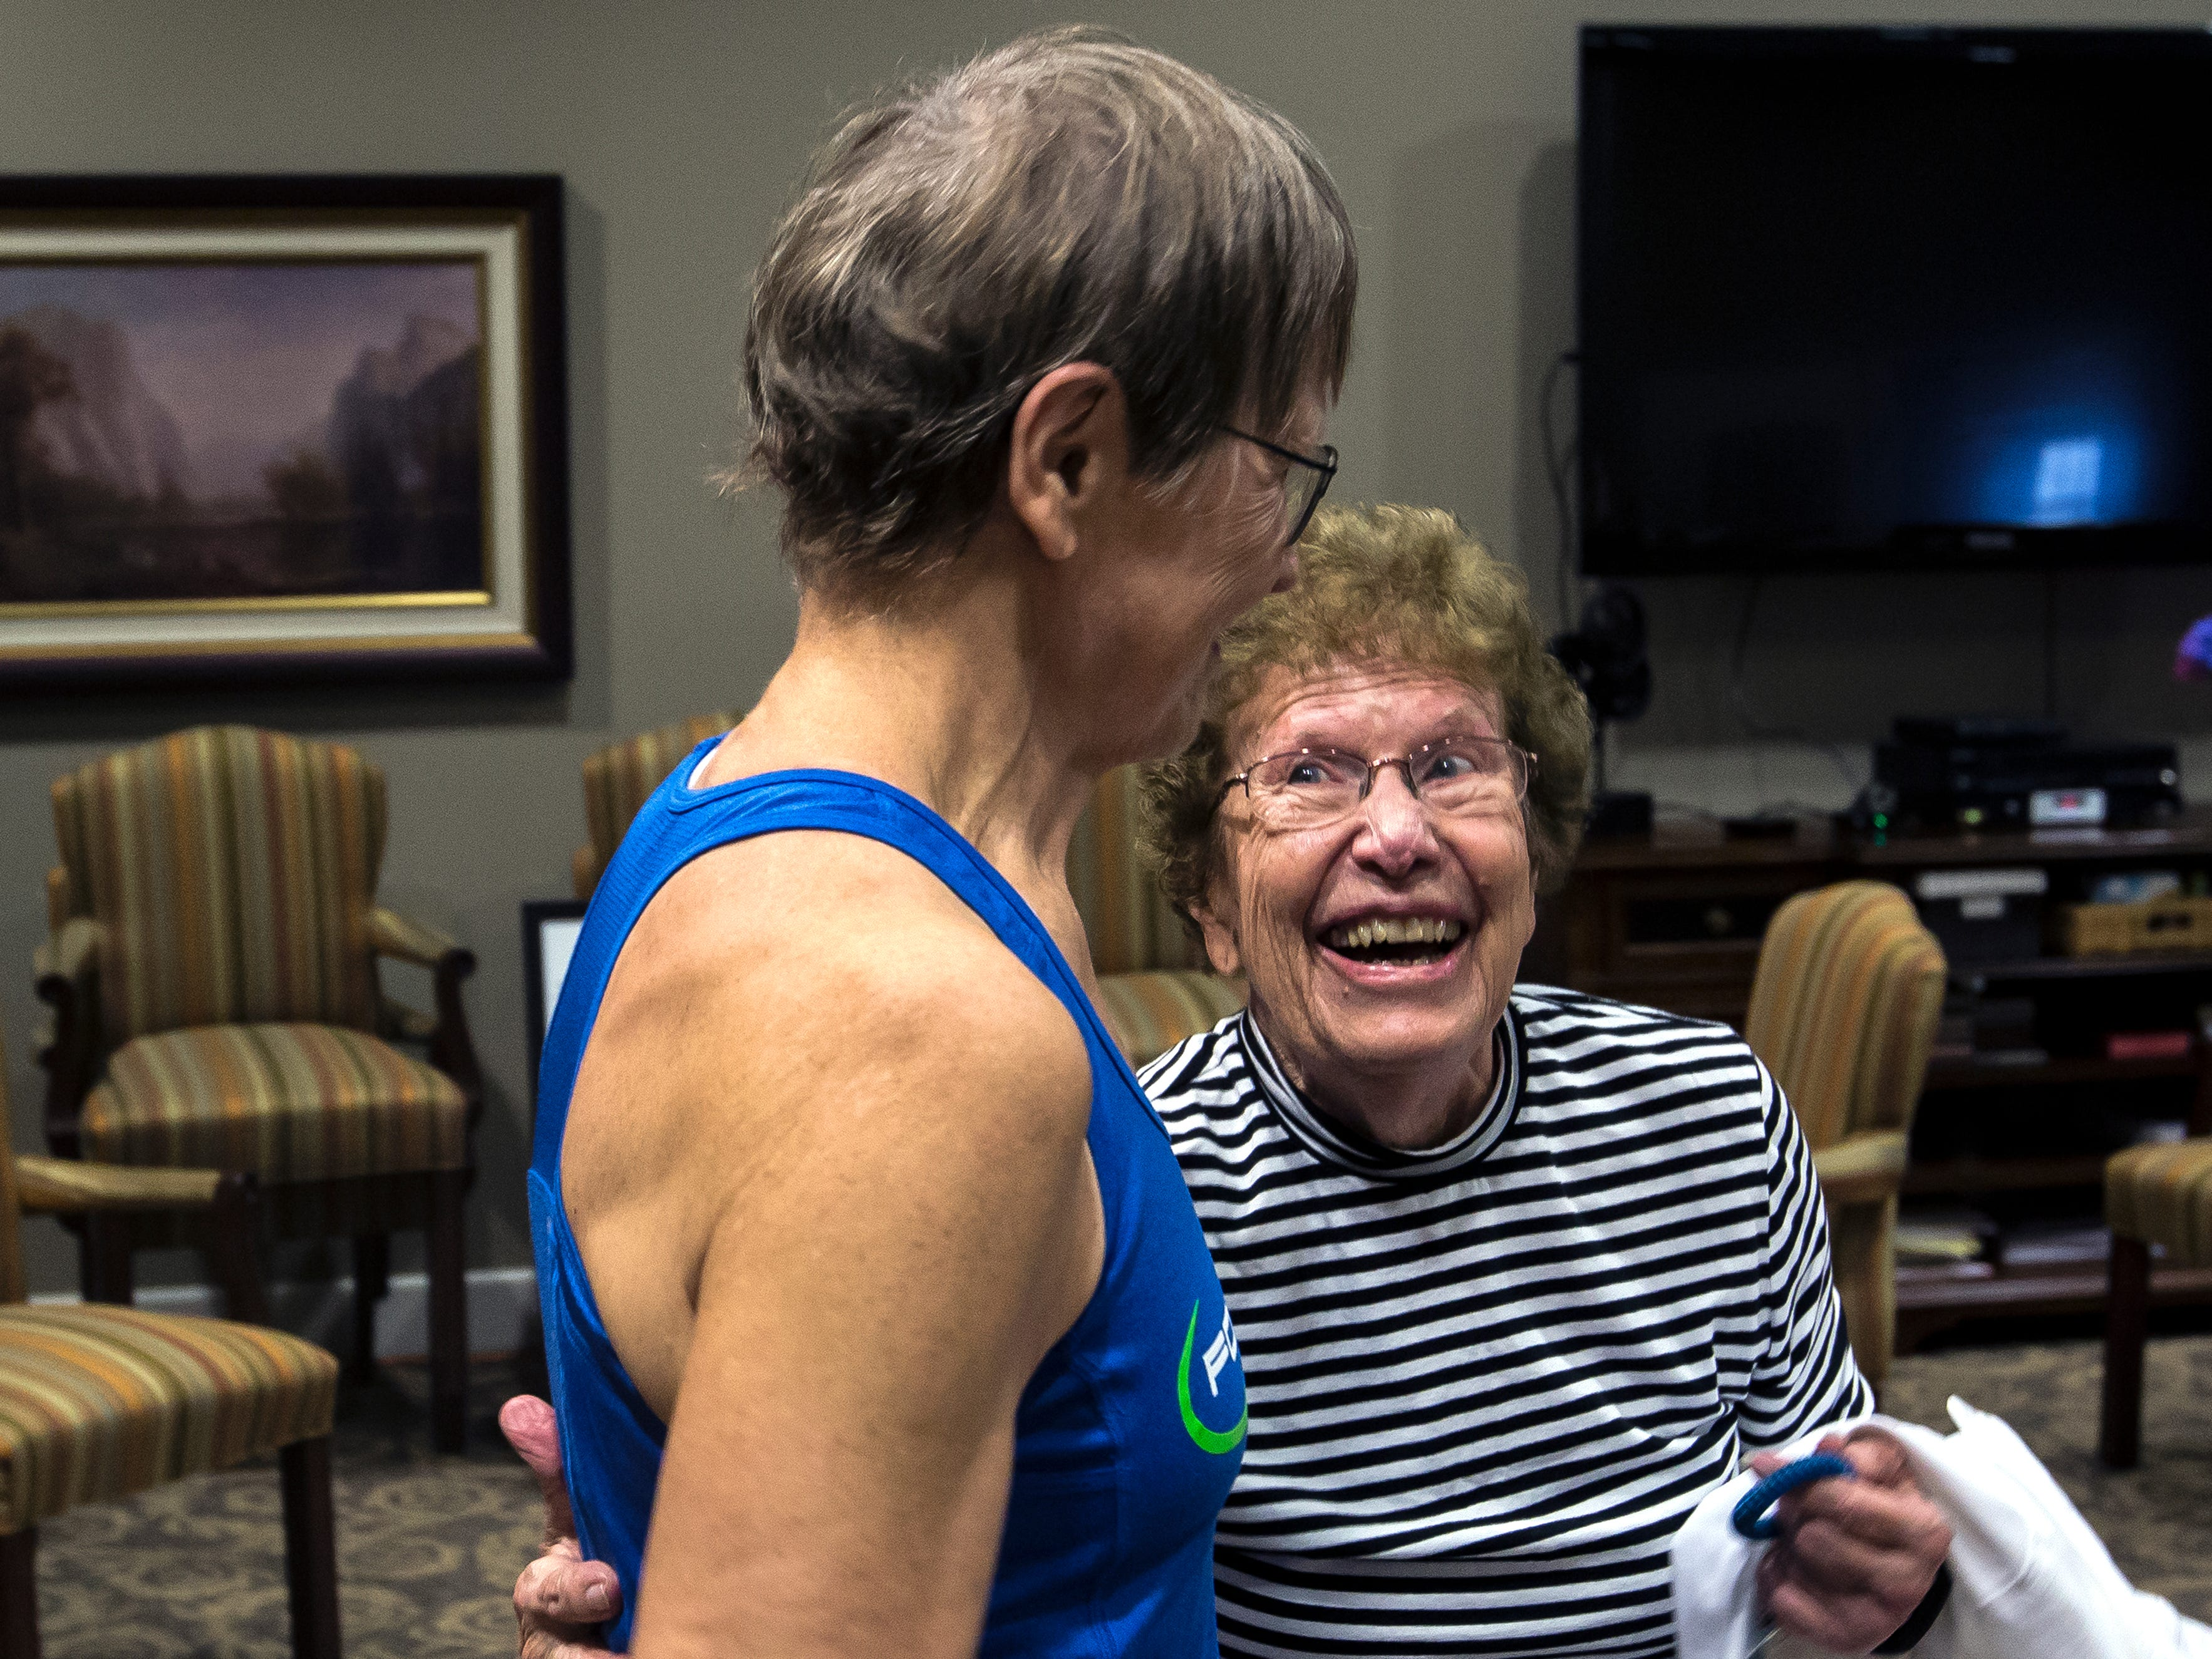 A participant hugs Betty Lou Sweeney after she led a class for elderly residents of the Brookdale assisted living facility in Stevens Point, Wis., Tuesday, Sept. 18, 2018. Sweeney volunteers to run the class on a weekly basis.